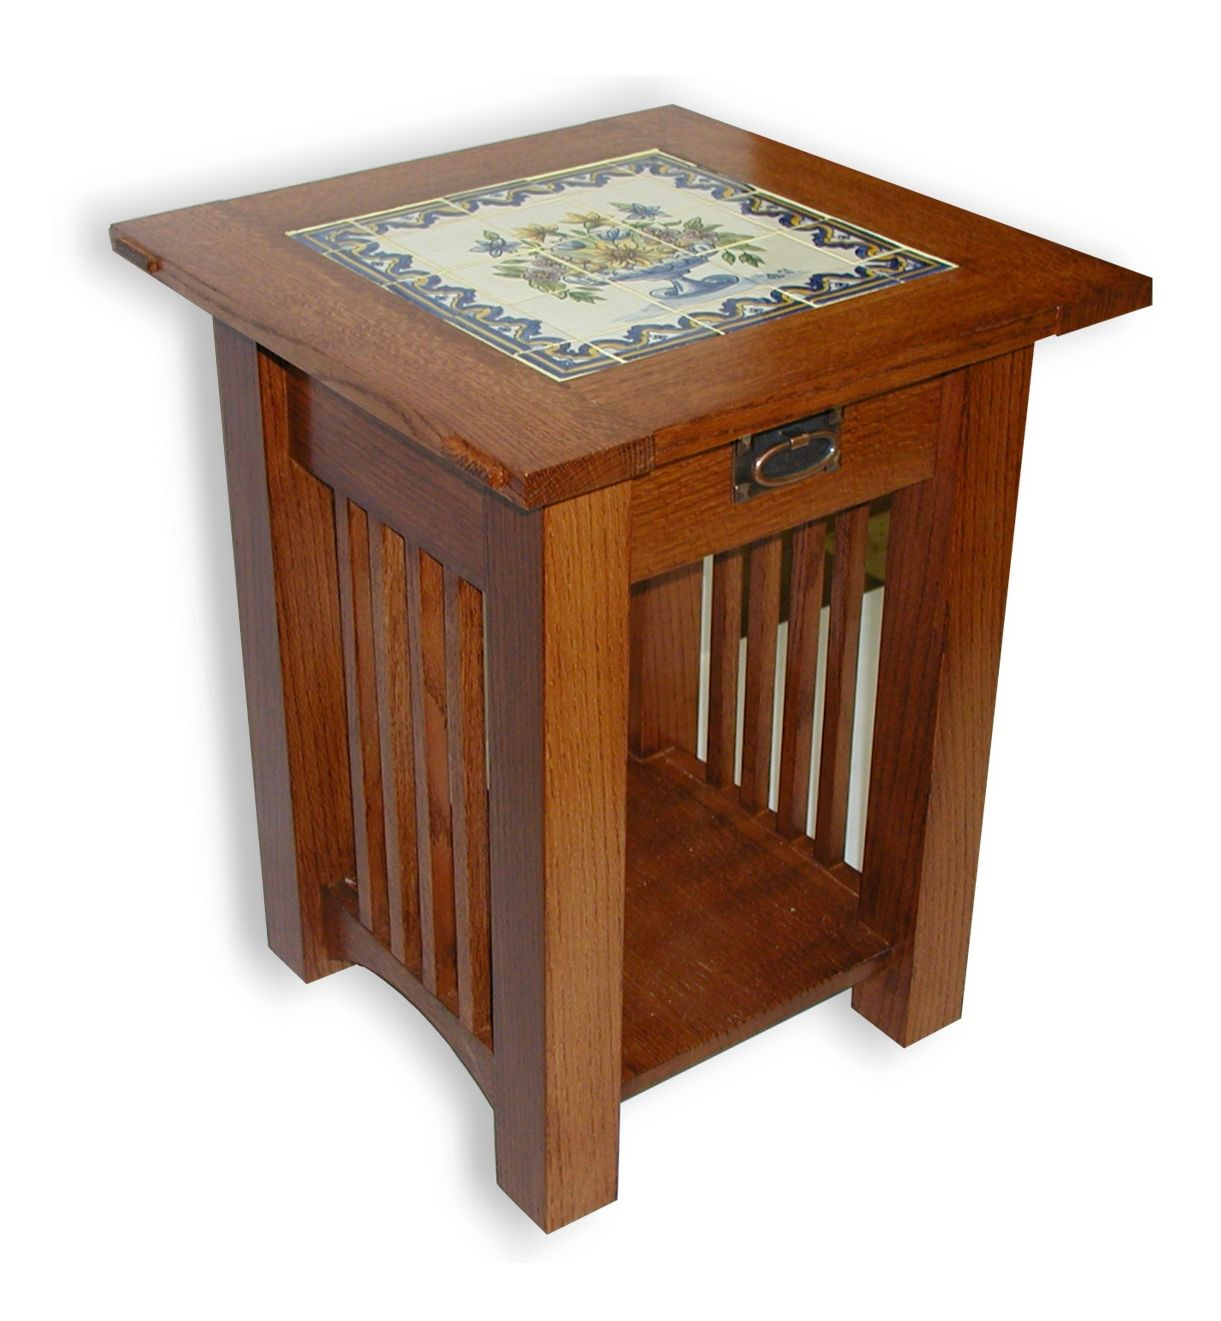 mission style end tables custom made tile top coffee table and round tree stump womens tops kmart diy accent ideas decor lift henredon furniture quality orange nest display large